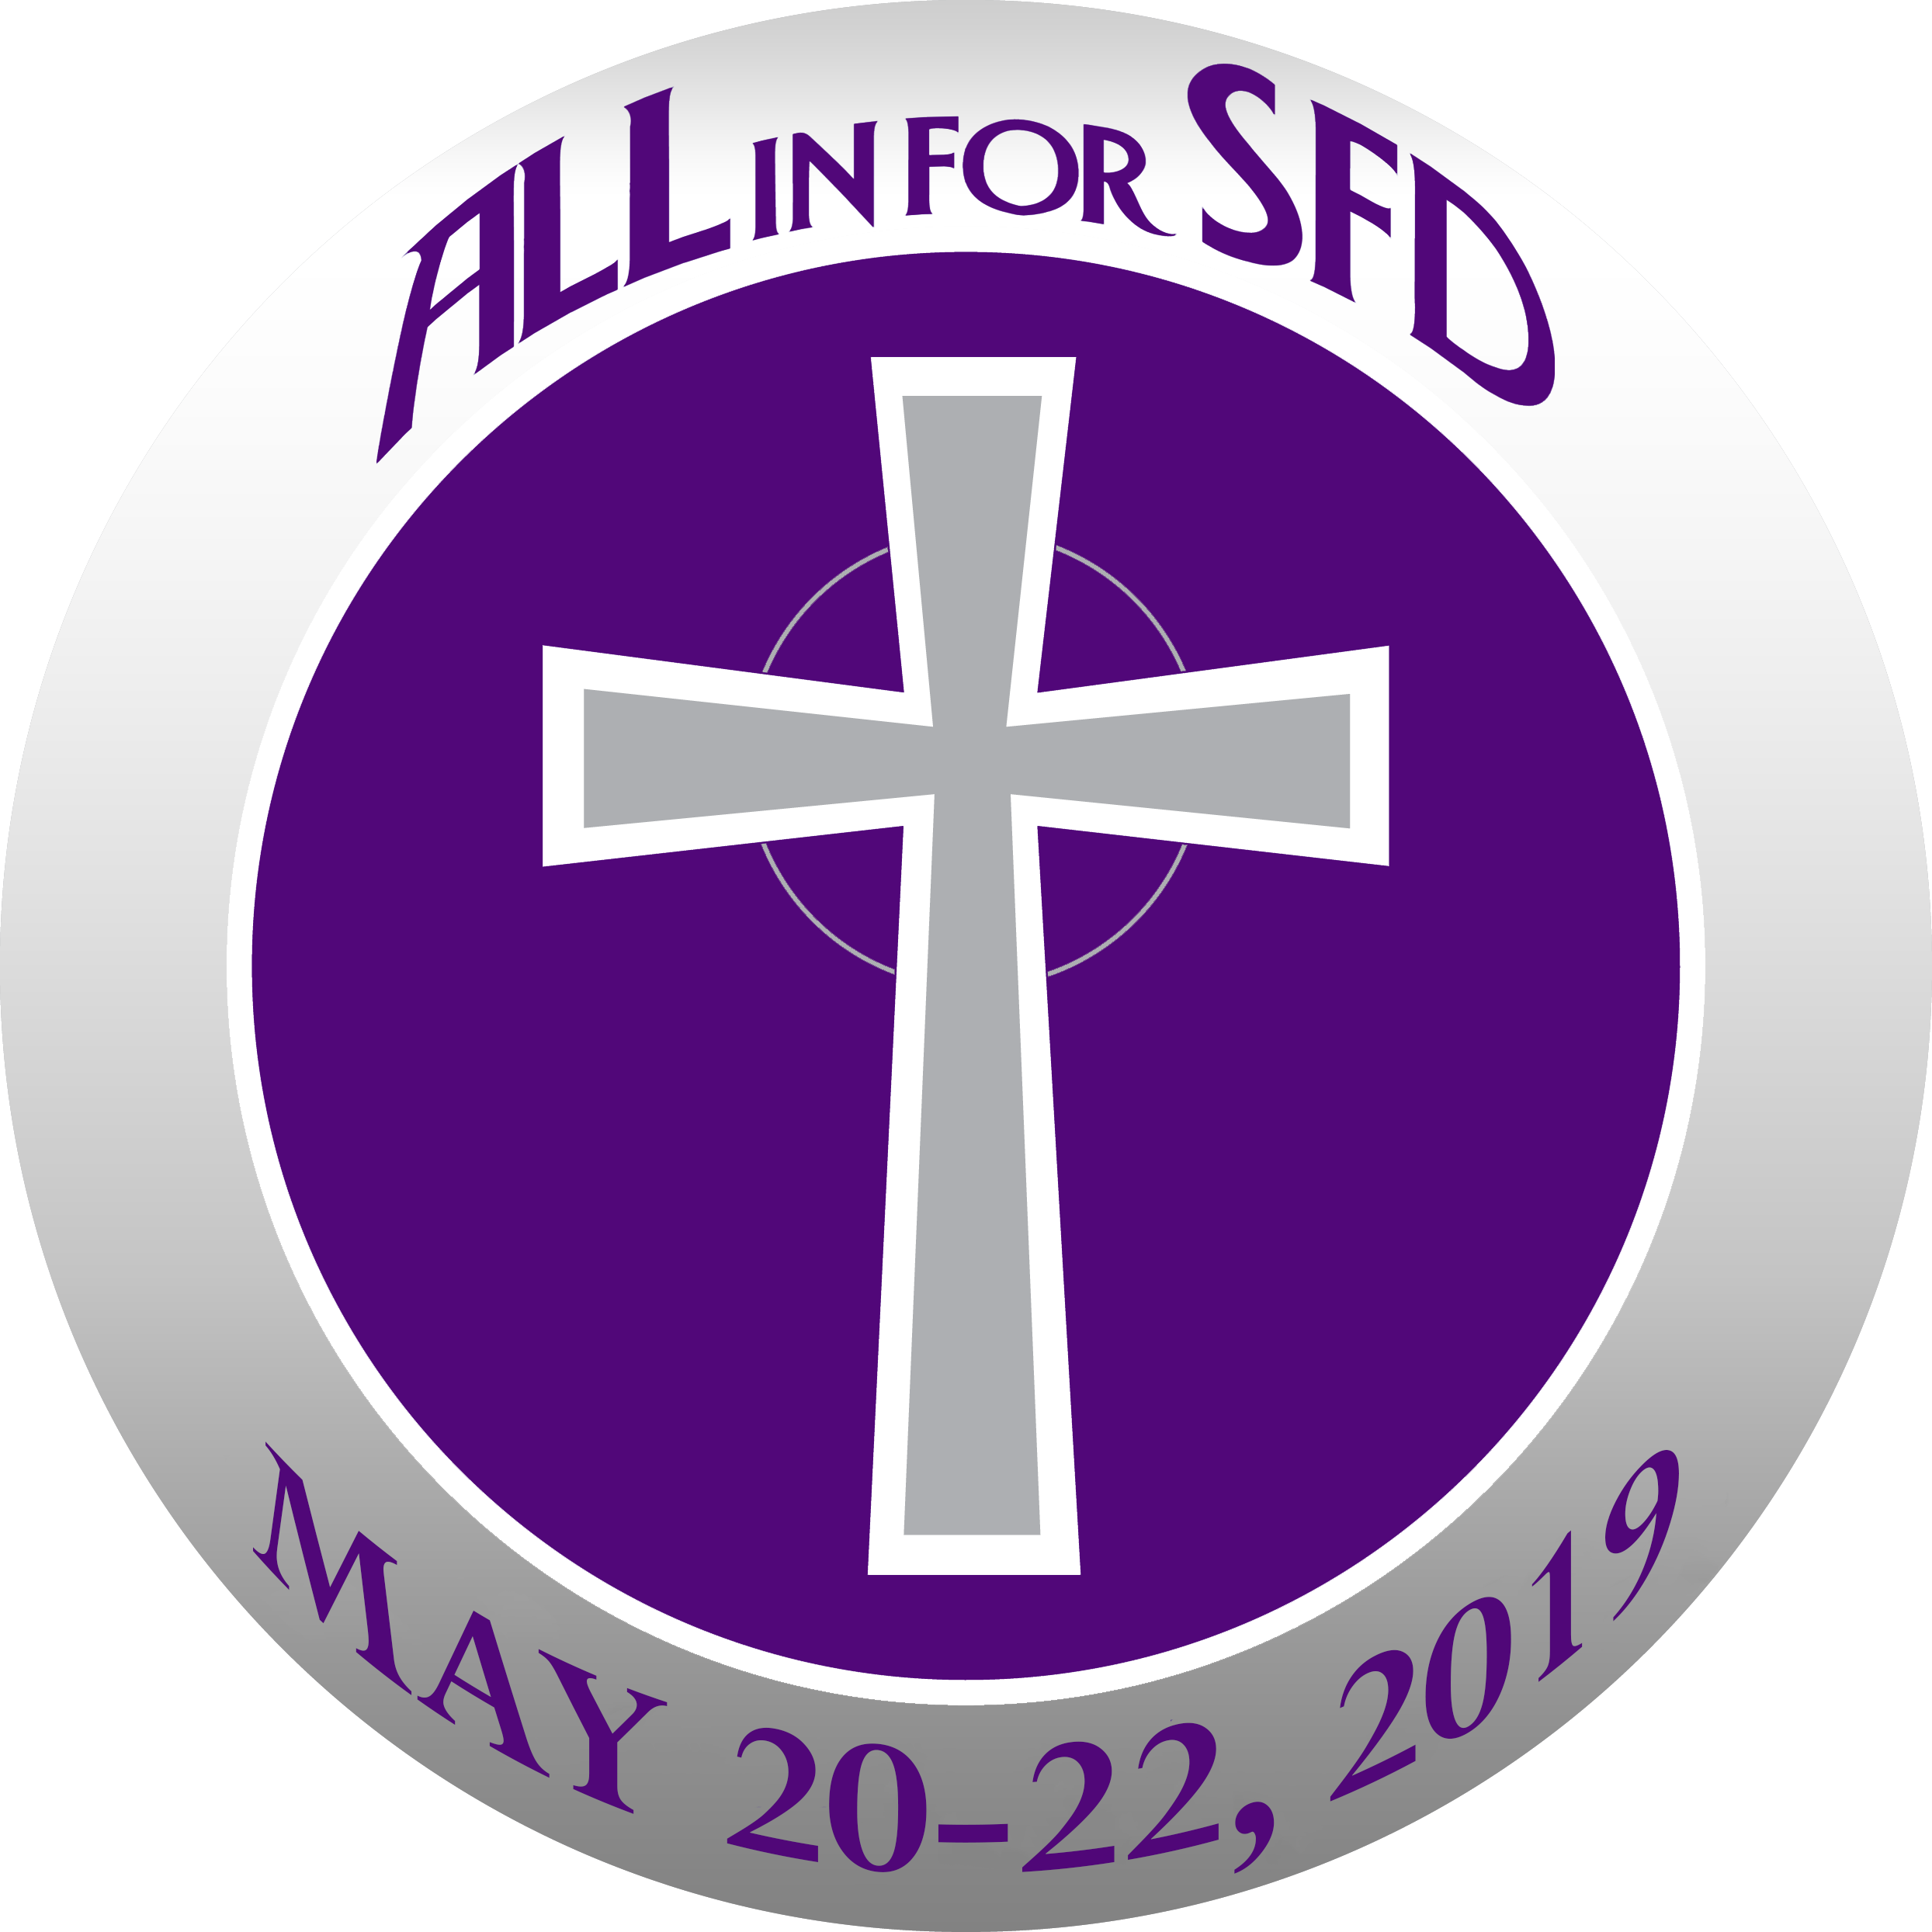 ALL IN FOR SFD 2019.png